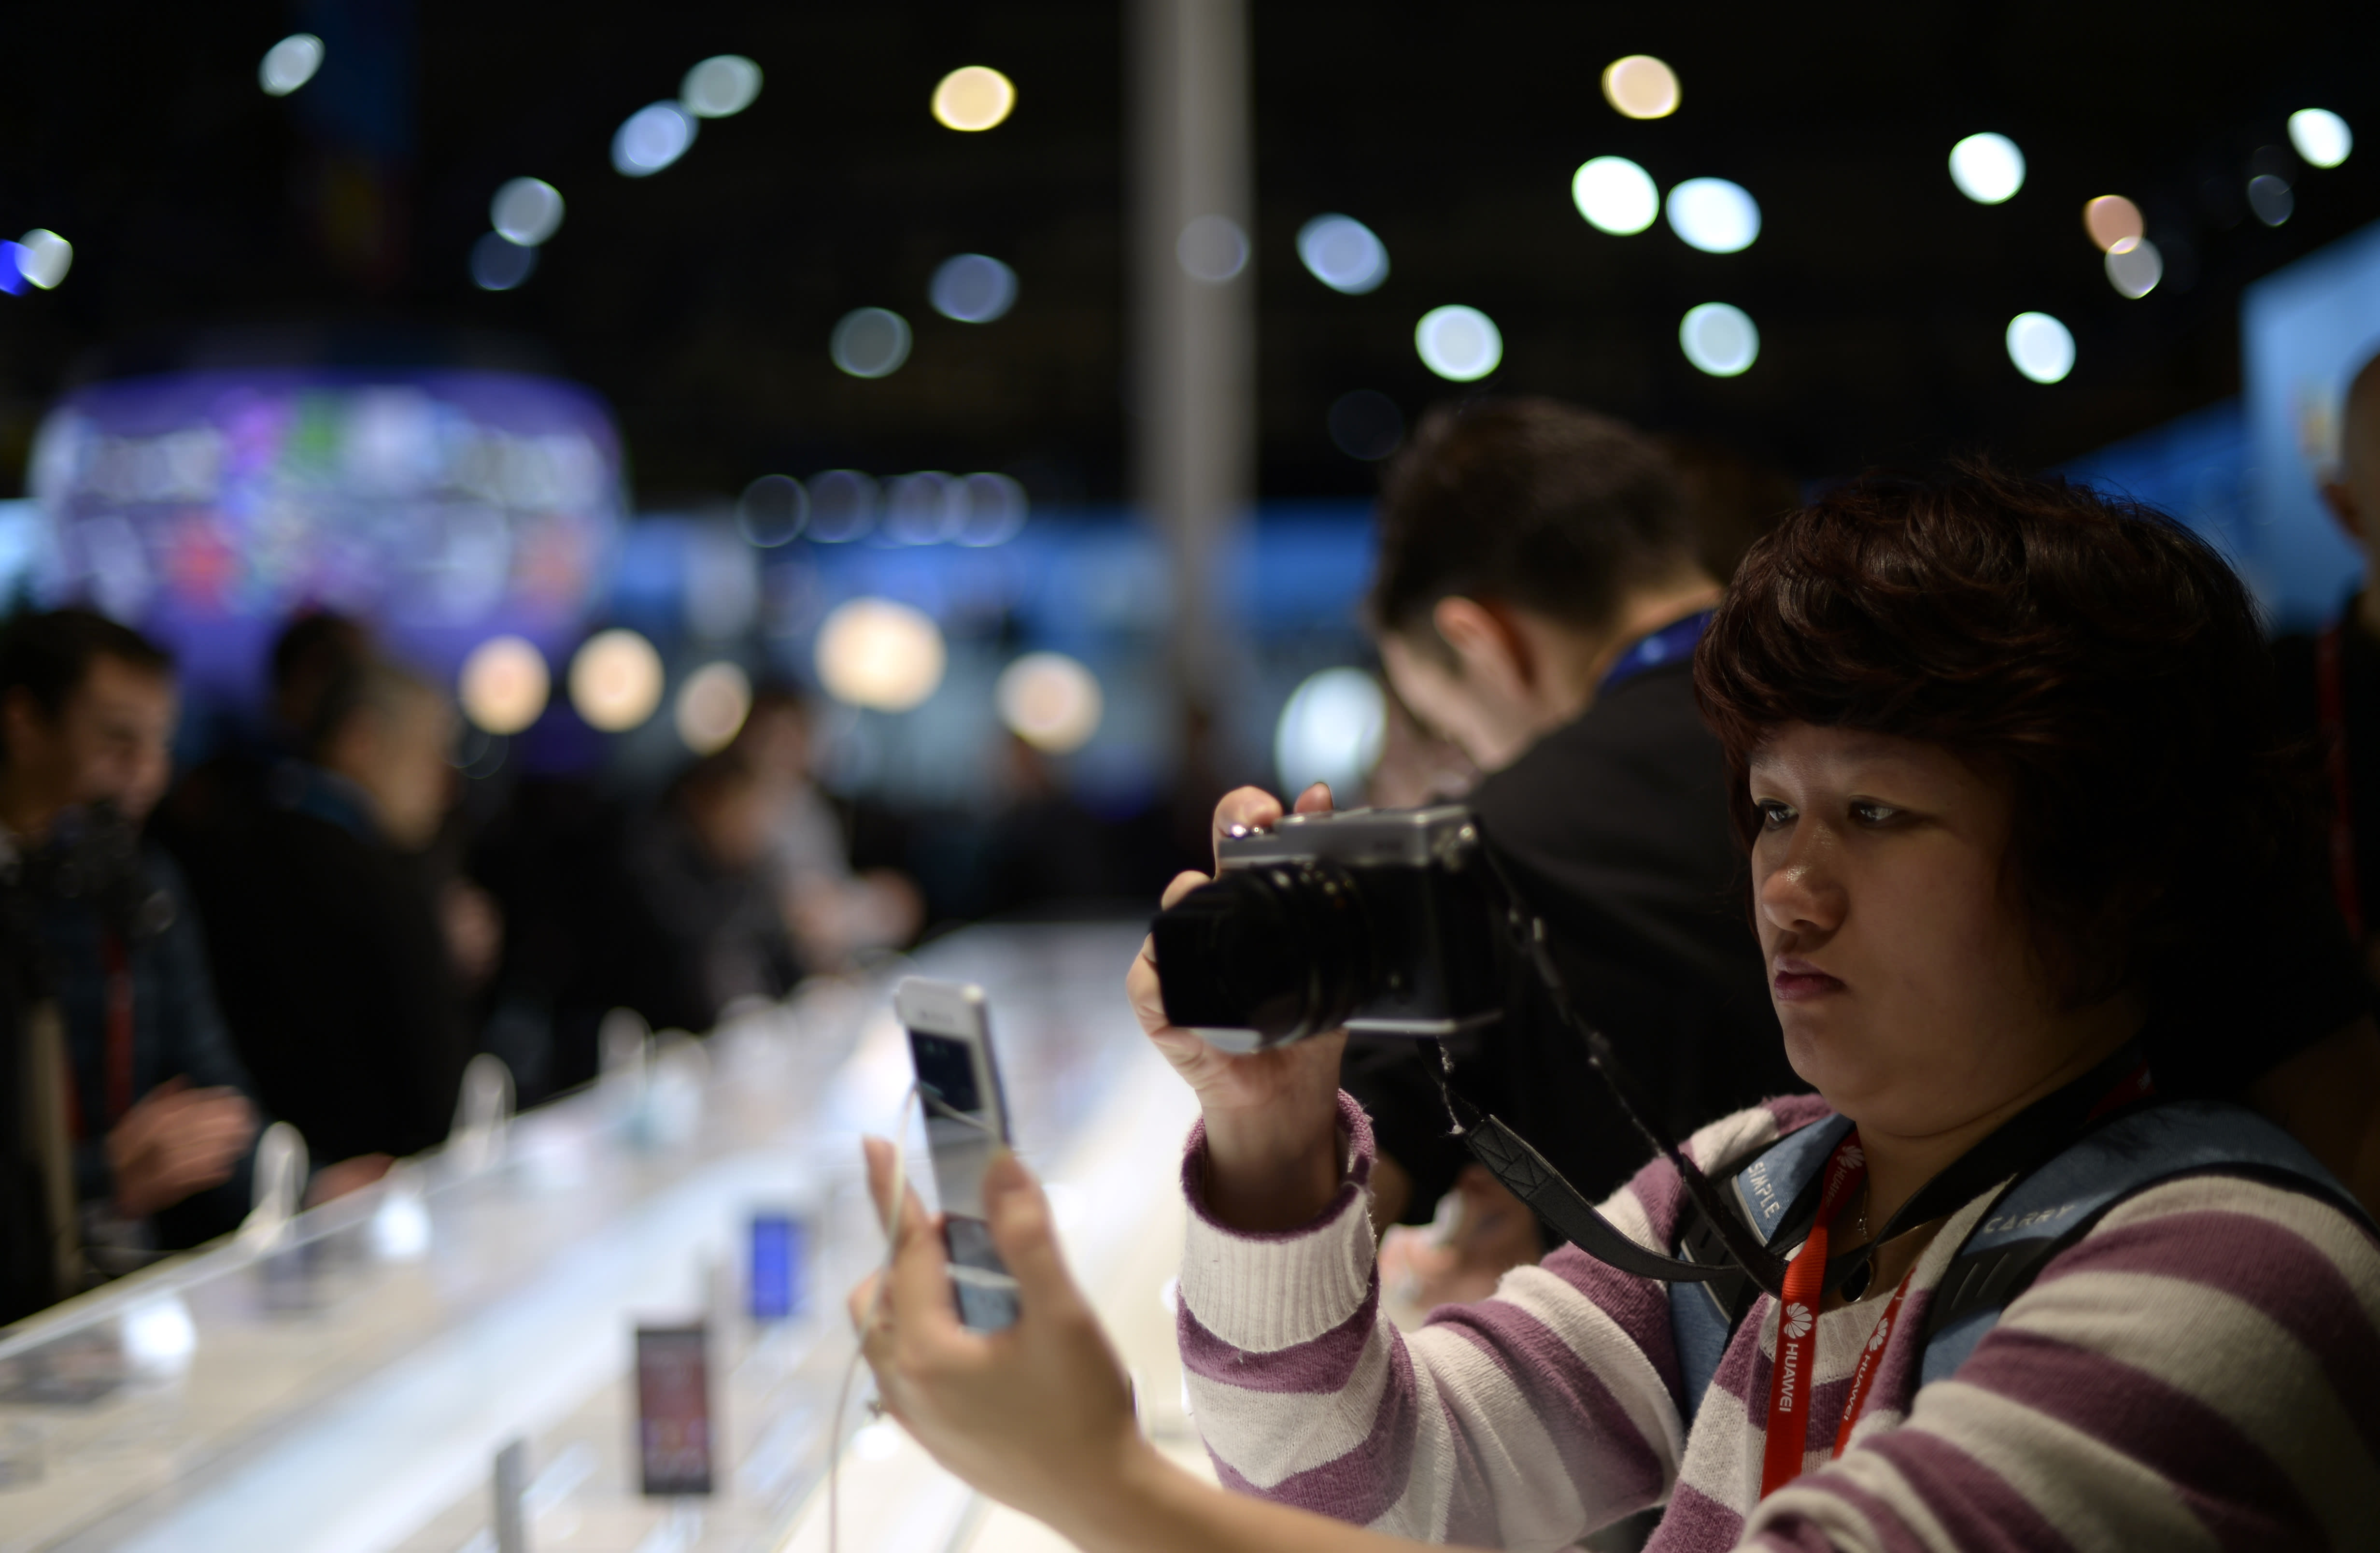 WIRELESS SHOW HIGHLIGHTS: New phones, new ways to connect